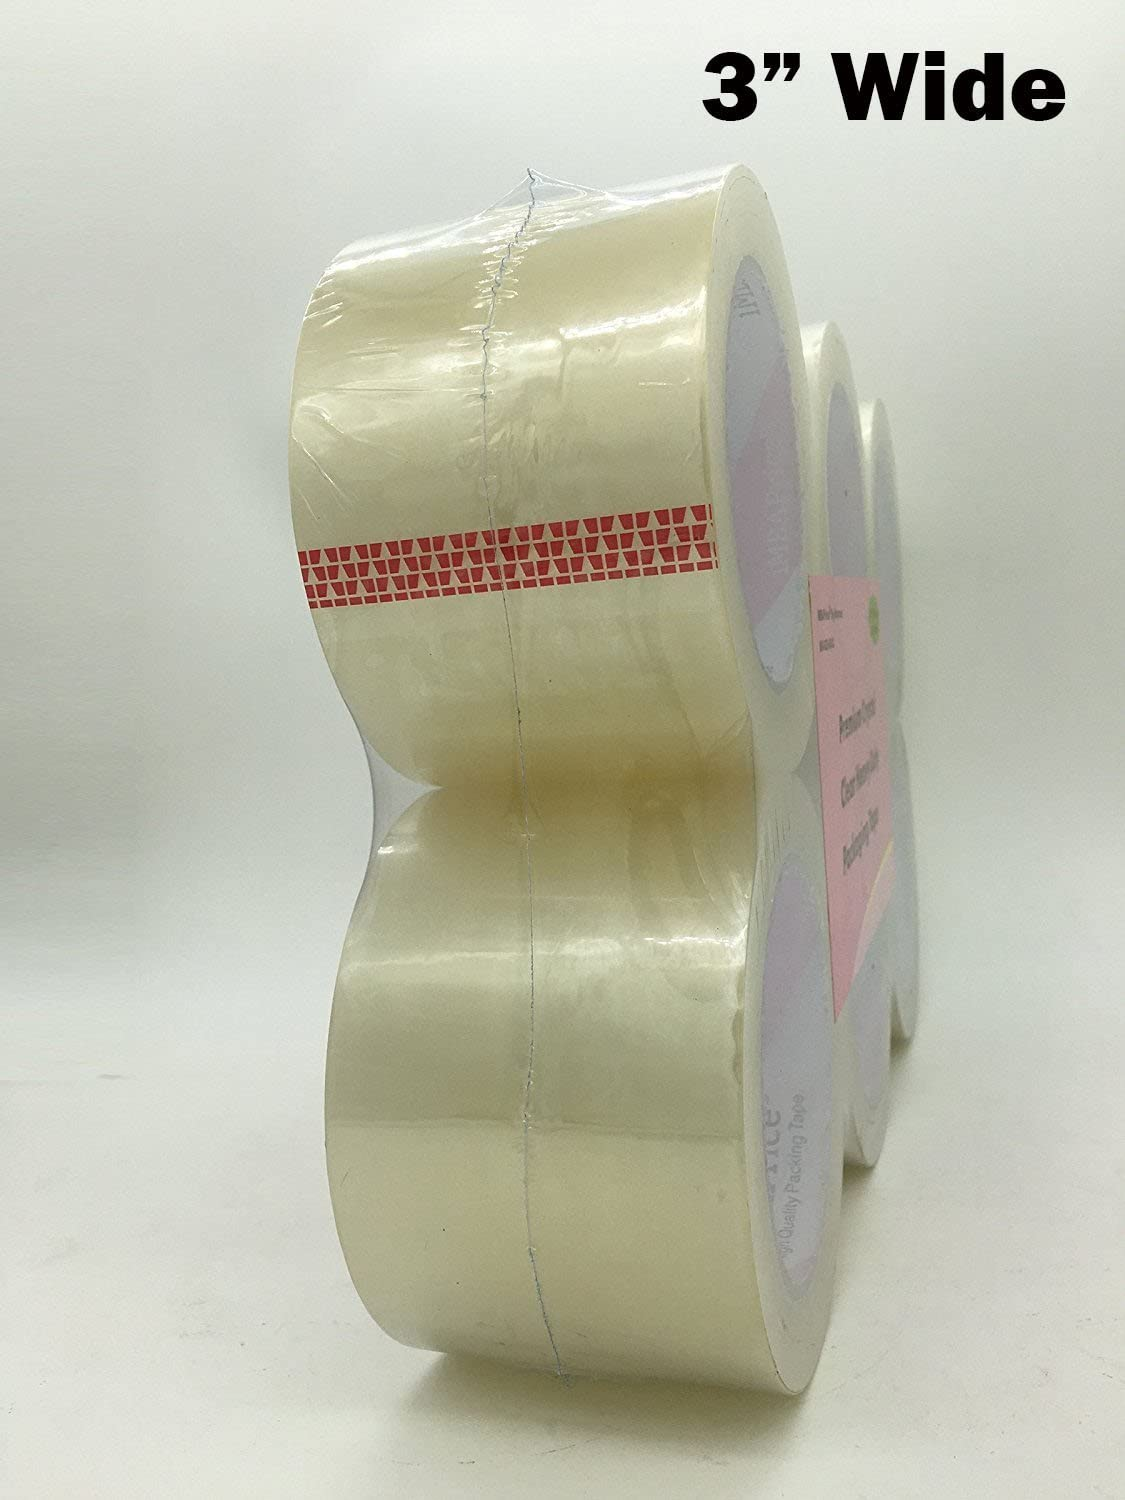 2x330 Feet Total 220 Yards iMBAPrice 3 Premium Packing Tape 3 Wide 2.6 mil Heavy Duty Ultra Clear Extra Long Lasting Shipping Packaging Tape - 2 Roll of 110 Yards